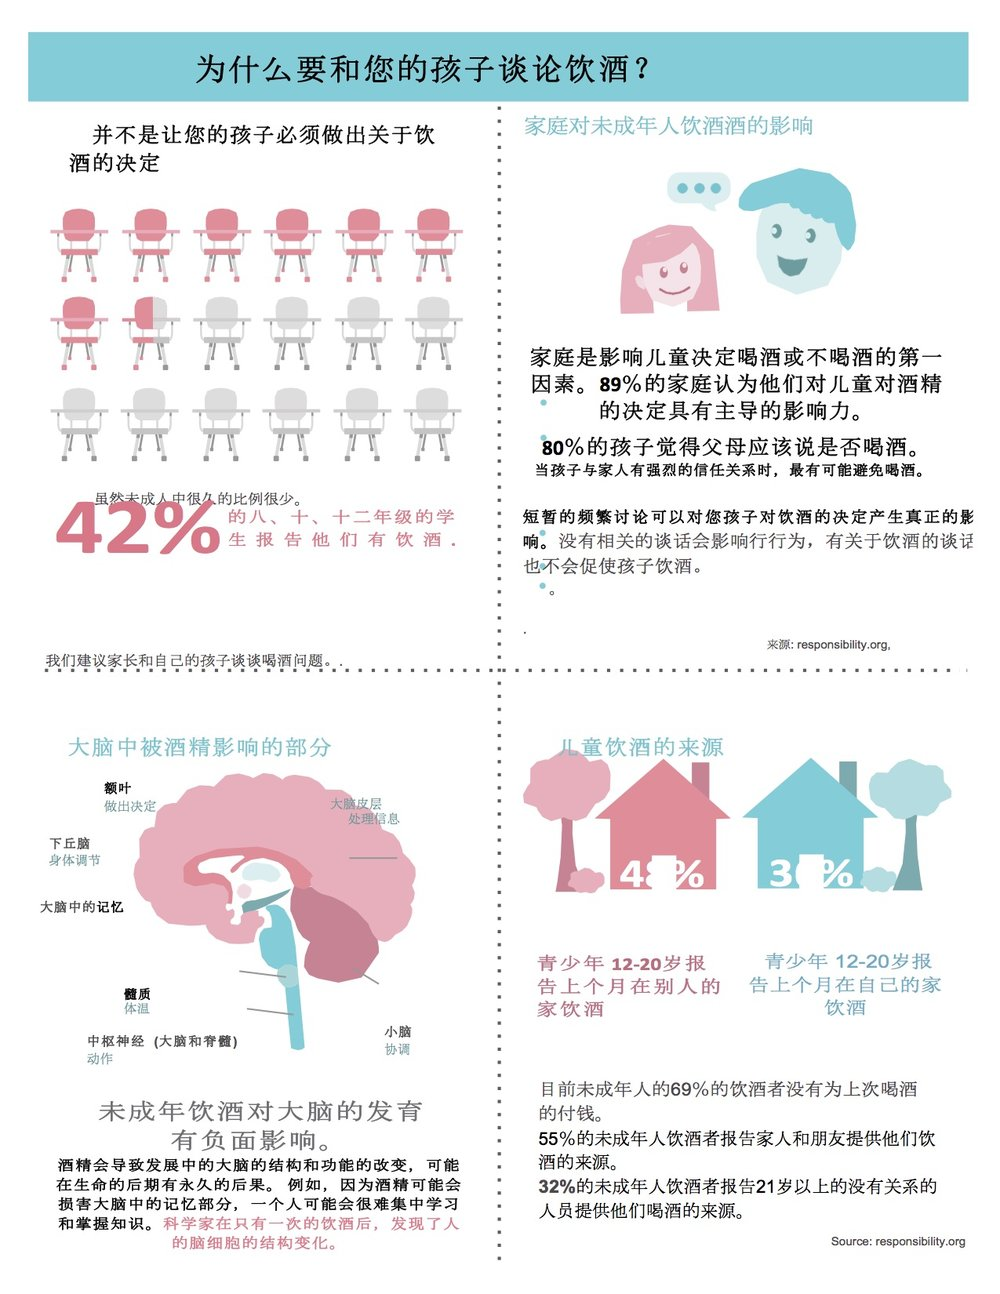 Alcohol Why Fact Sheet No Outline (Chinese).jpg